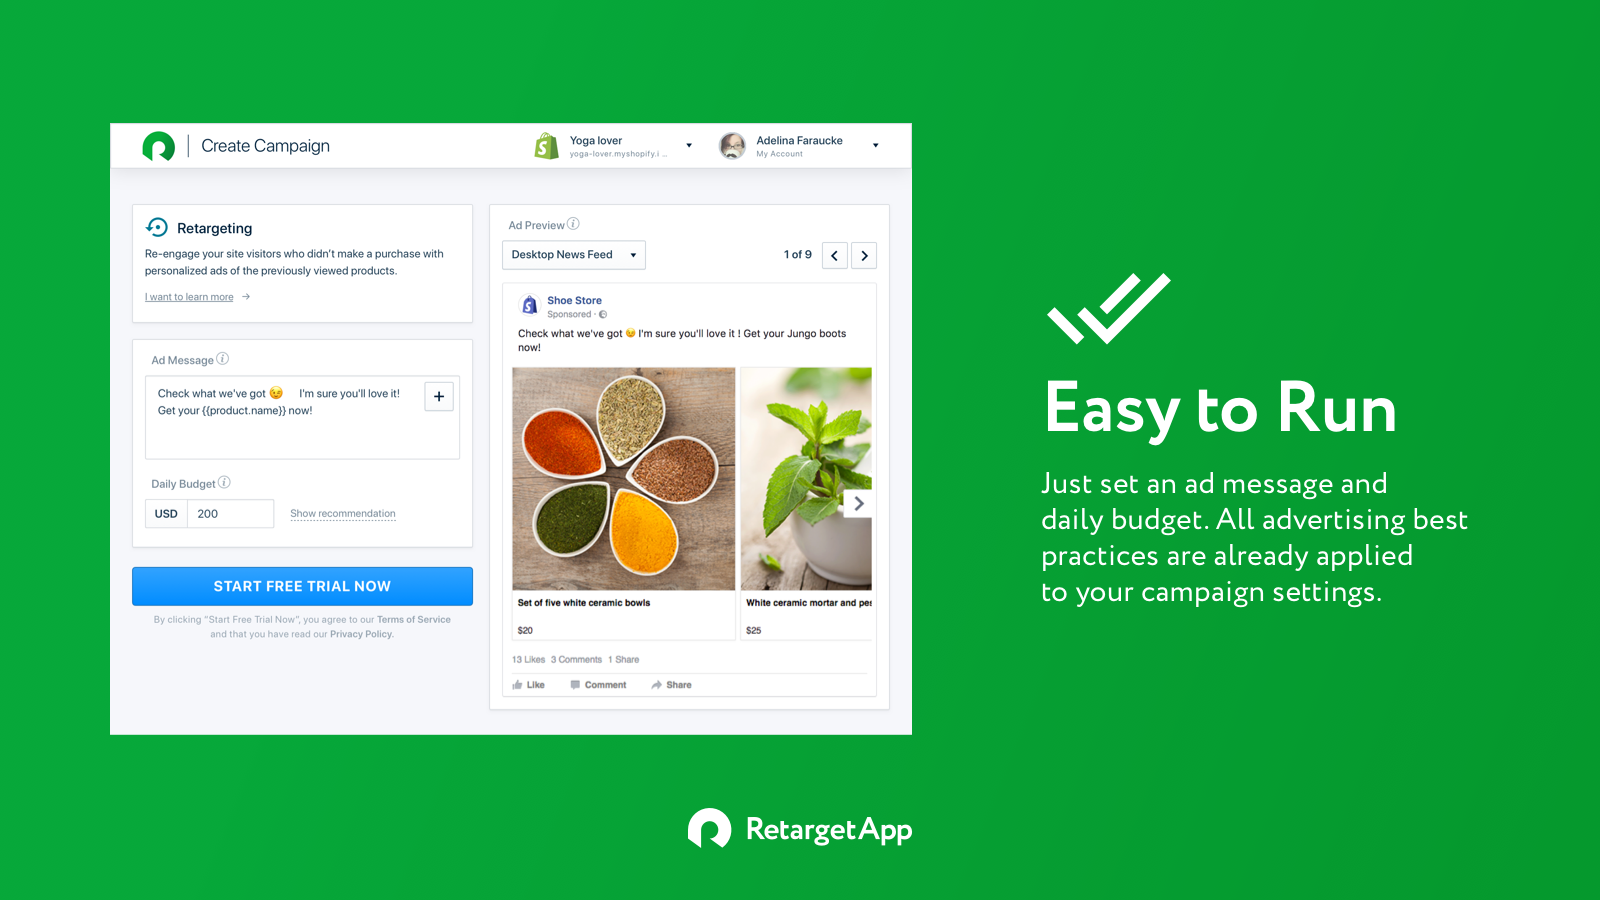 Retargeting best practices are automatically applied to campaign